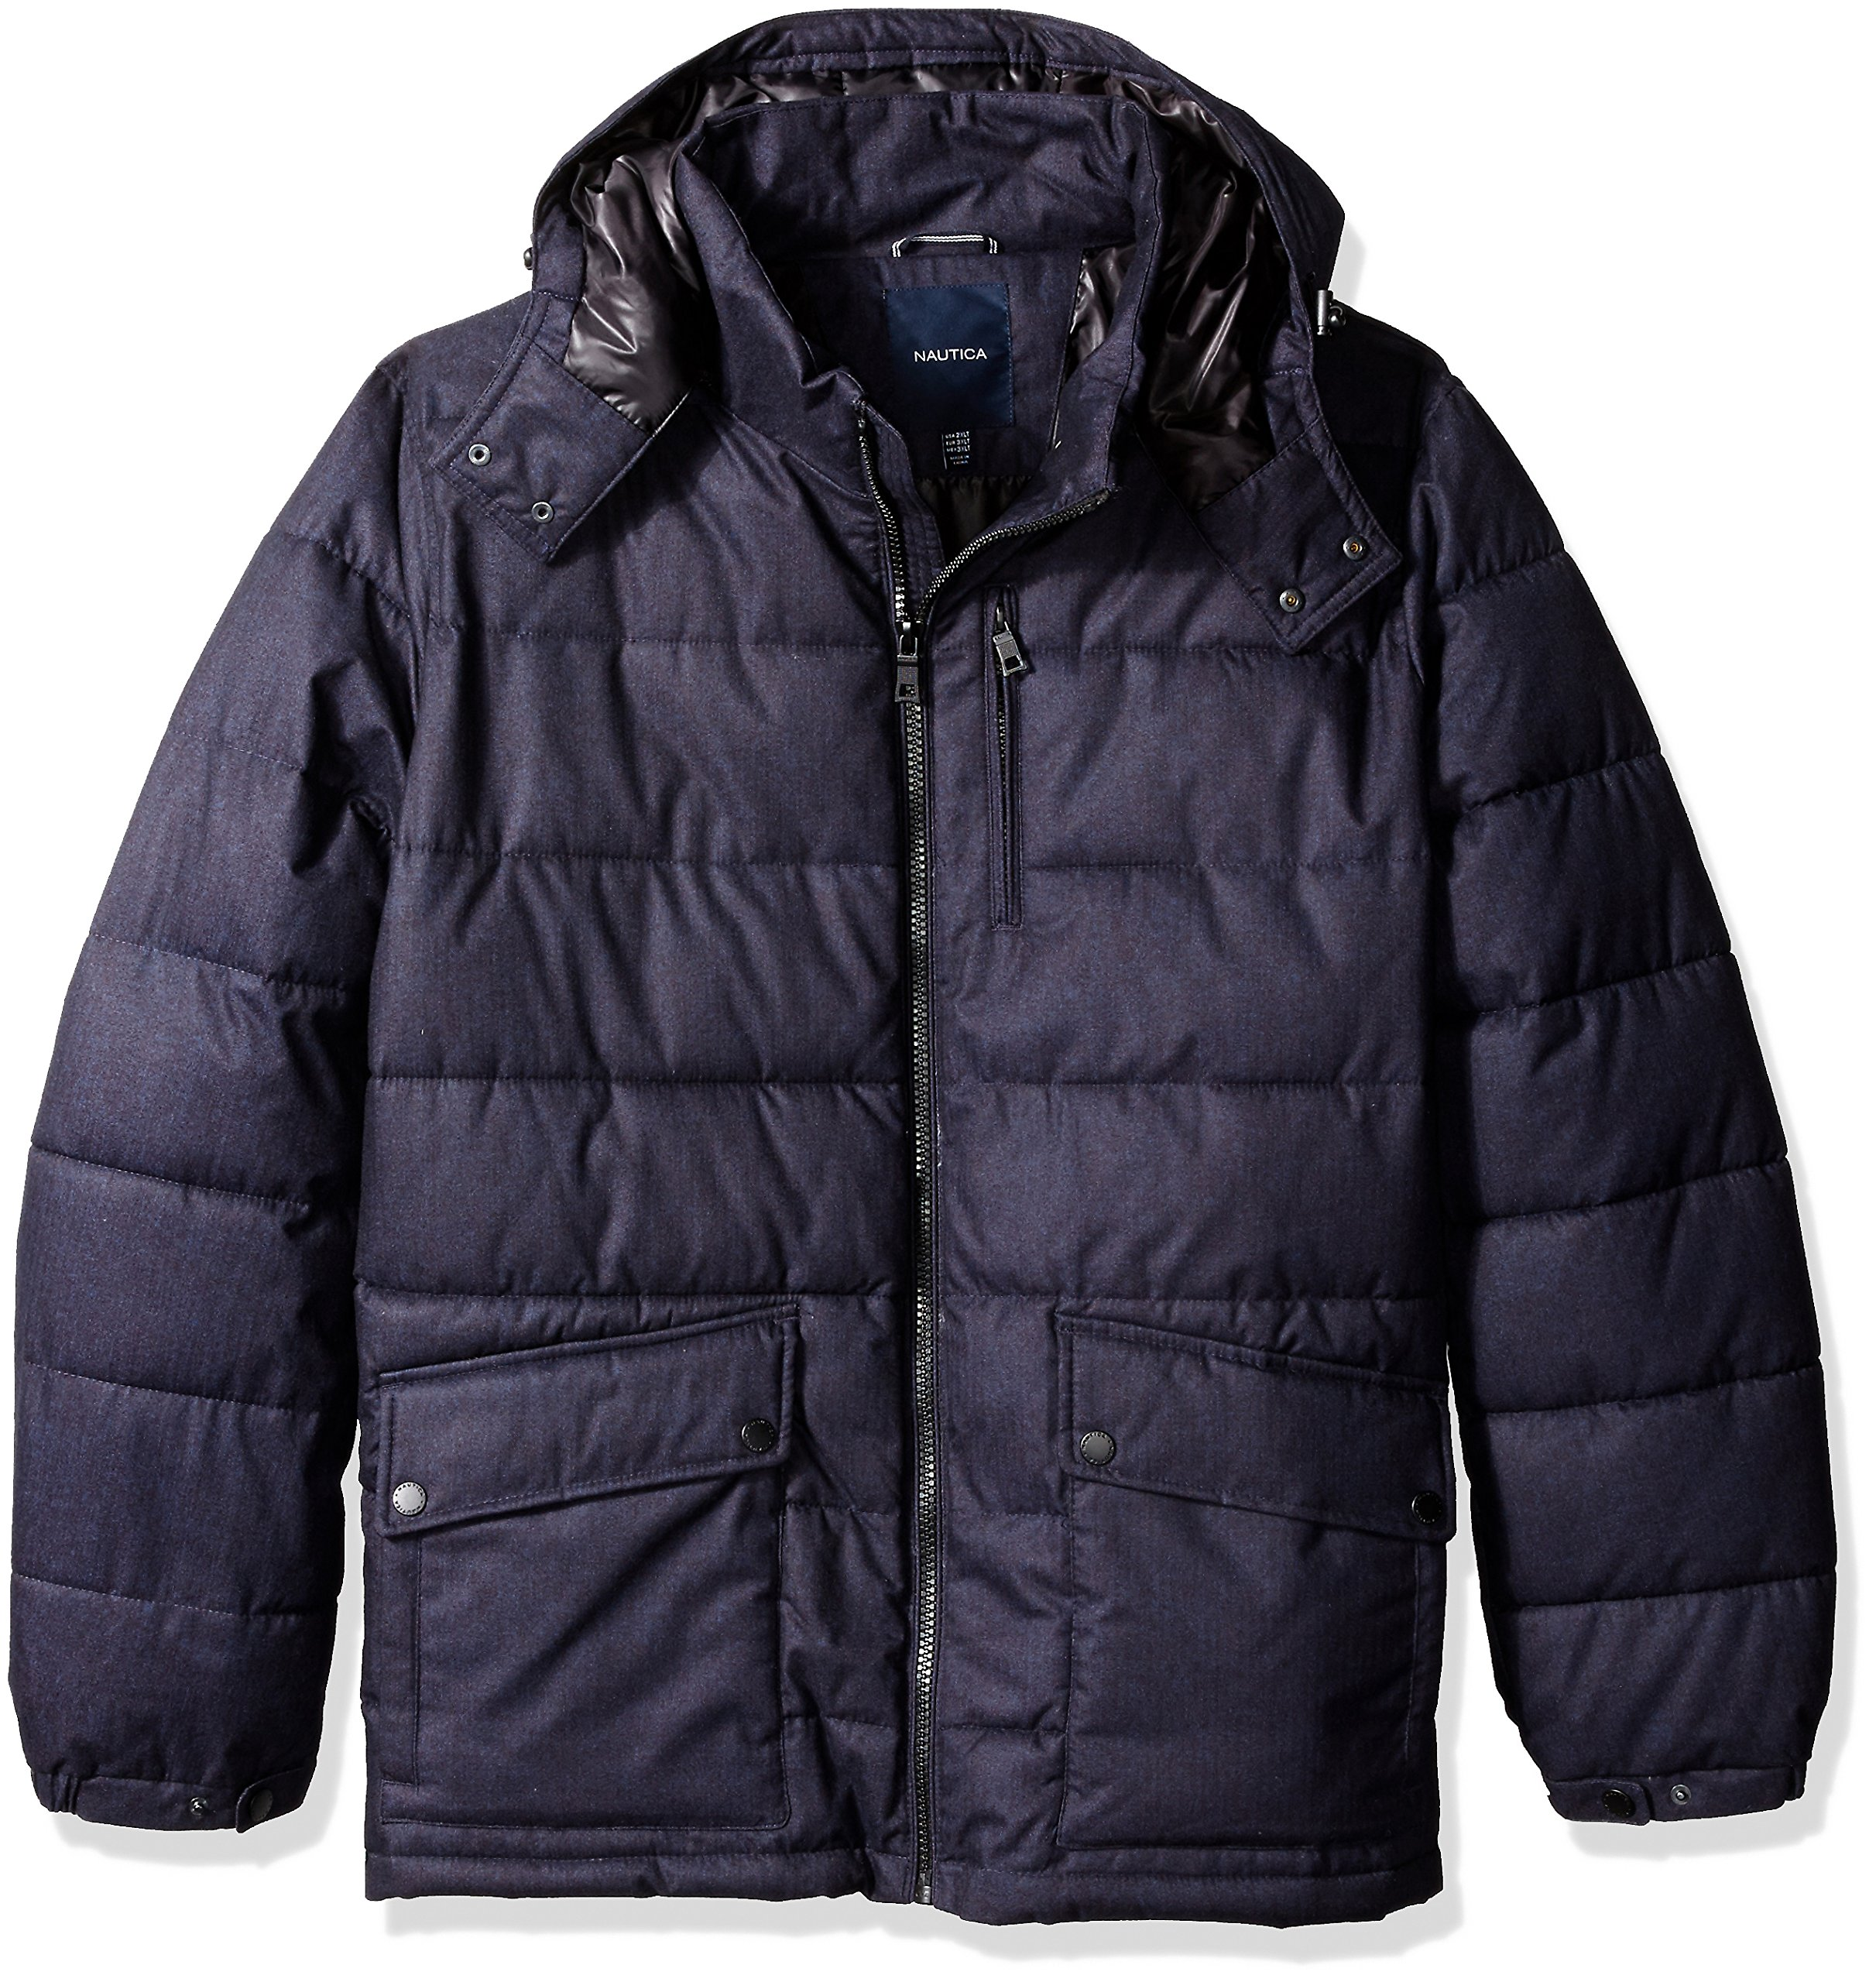 Nautica Men's Big and Tall Brushed Hooded Puffer Parka, Navy, 3X